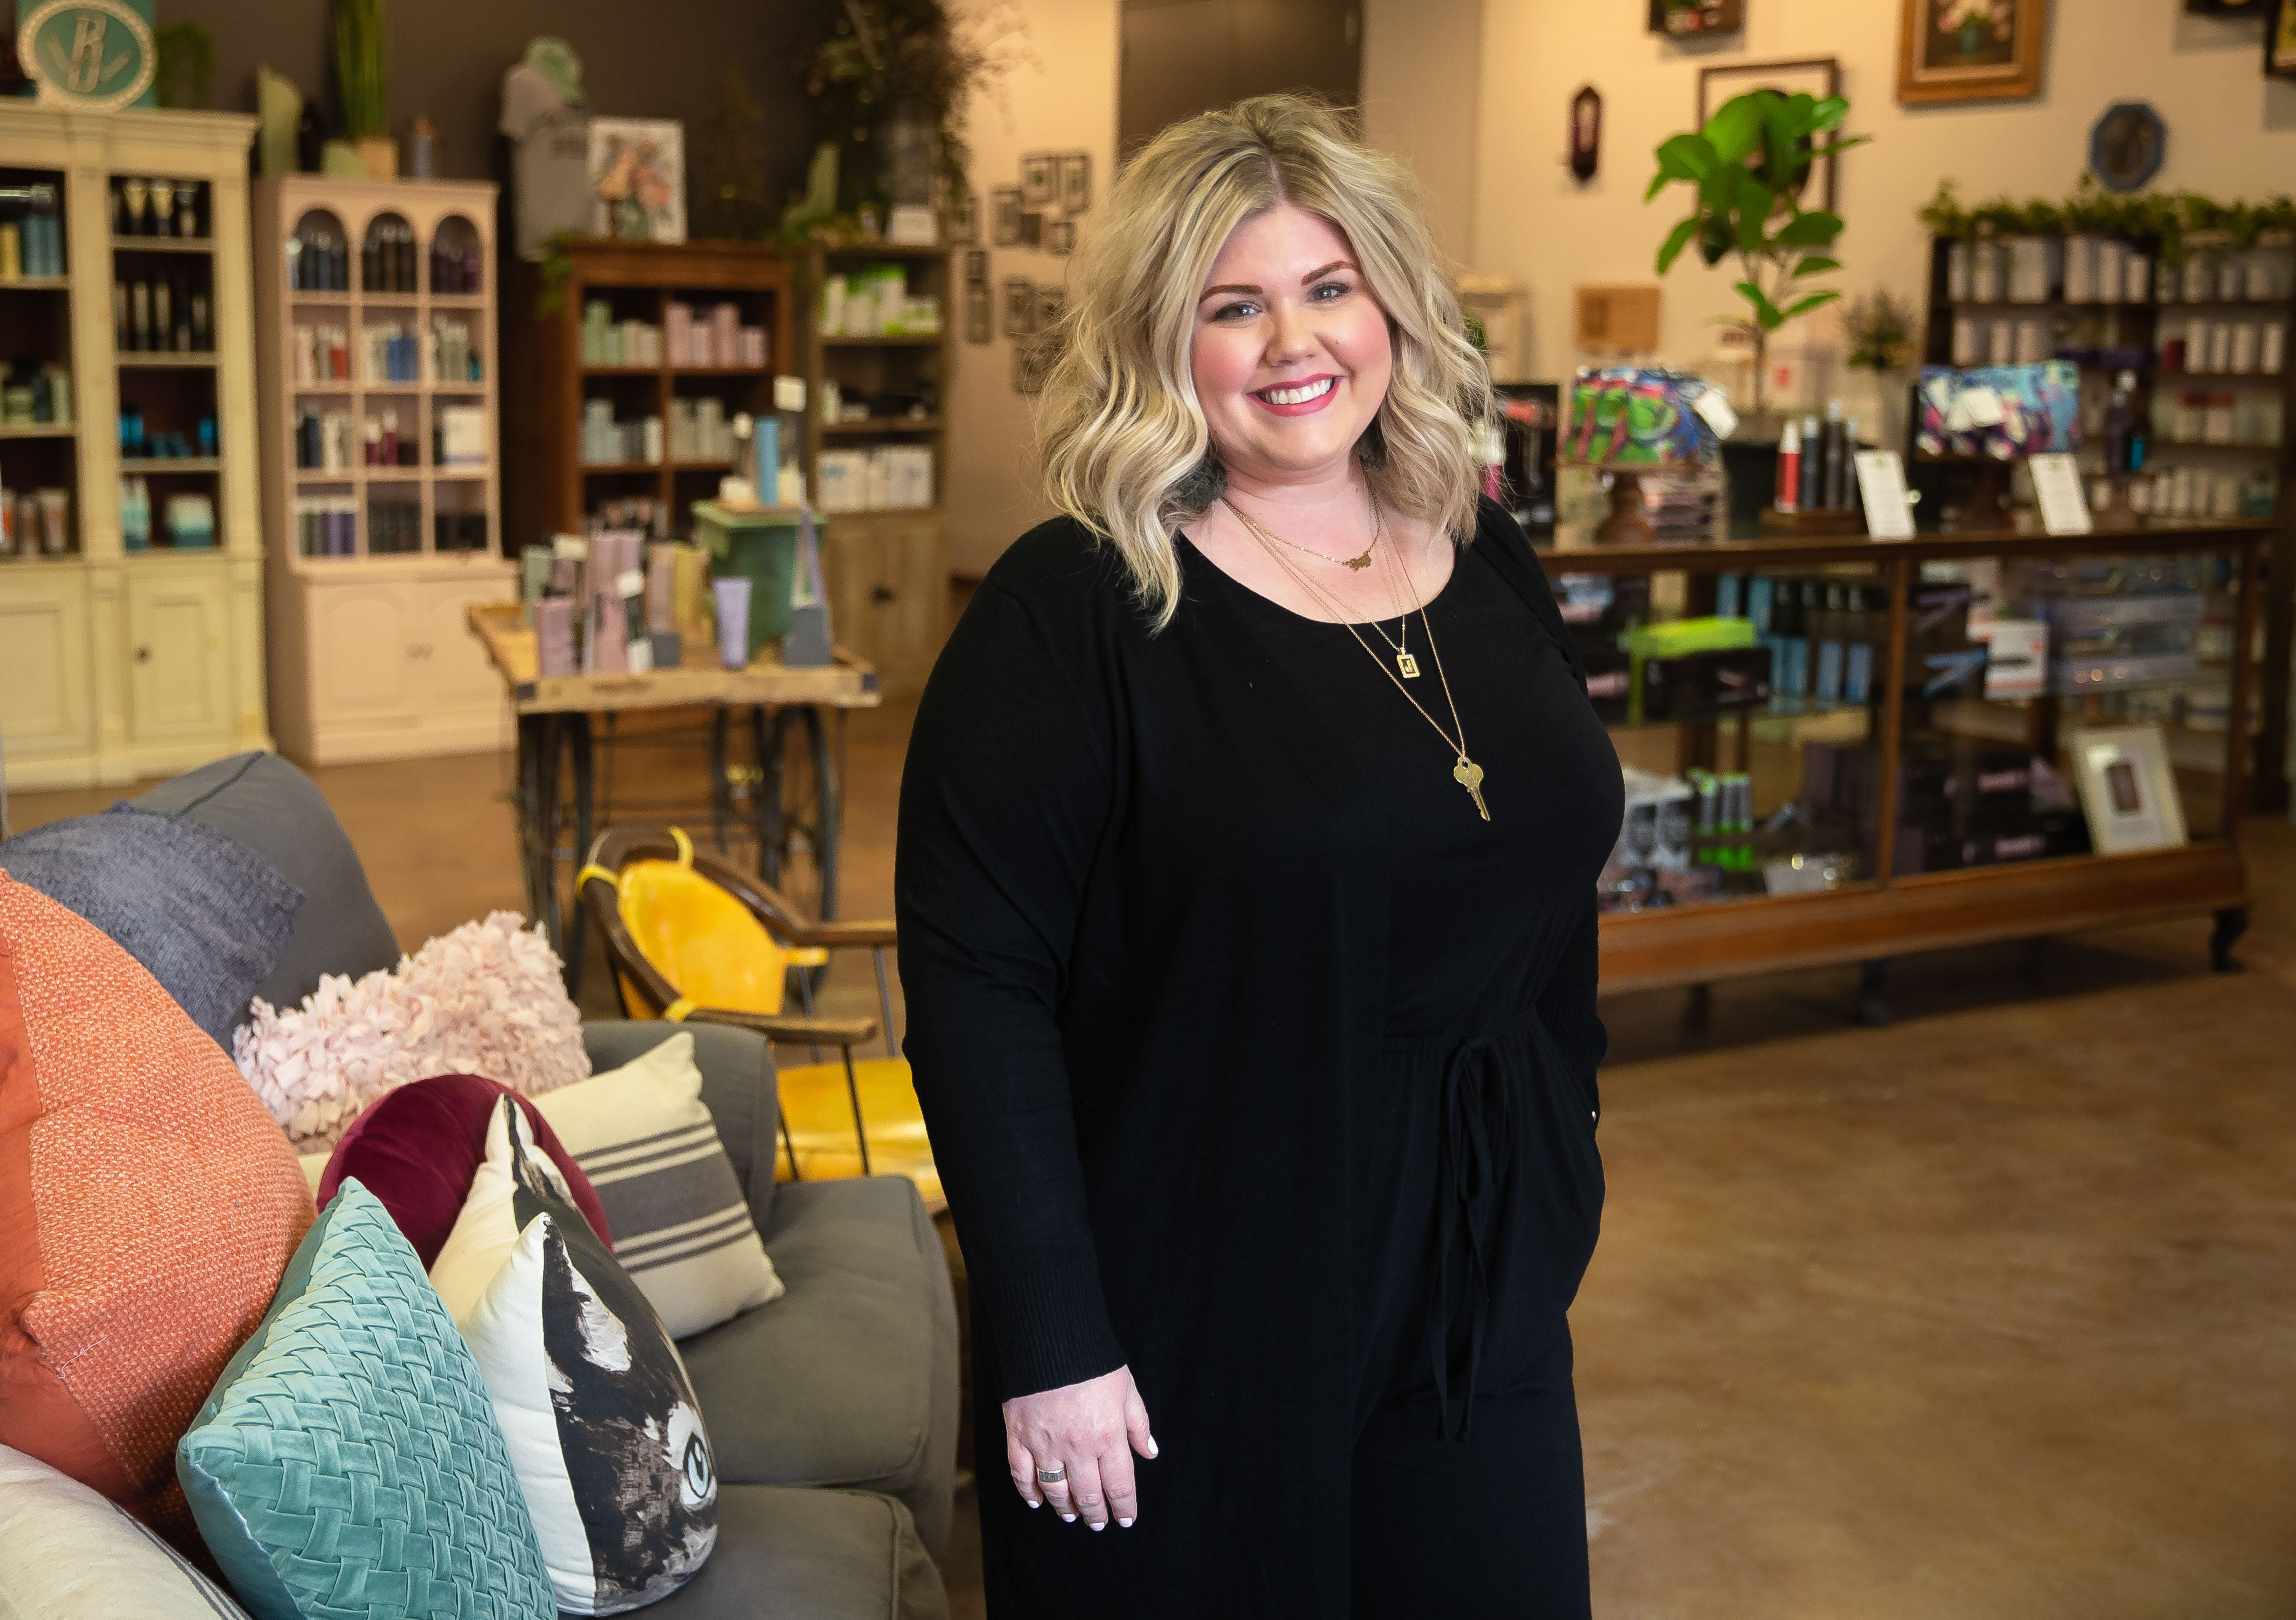 """Jessica Kocurek, owner of Willow & Birch, in the showroom of the boutique at Willow & Birch in Springfield, Ill., Wednesday, March 10, 2021. Kocurek """"made lemonade"""" out of the COVID-19 pandemic as she shifted to online sales and delivery of items from her boutique while the salon was forced to shutdown because of mitigations put in place to try and stop the spread of the virus. [Justin L. Fowler/The State Journal-Register]"""